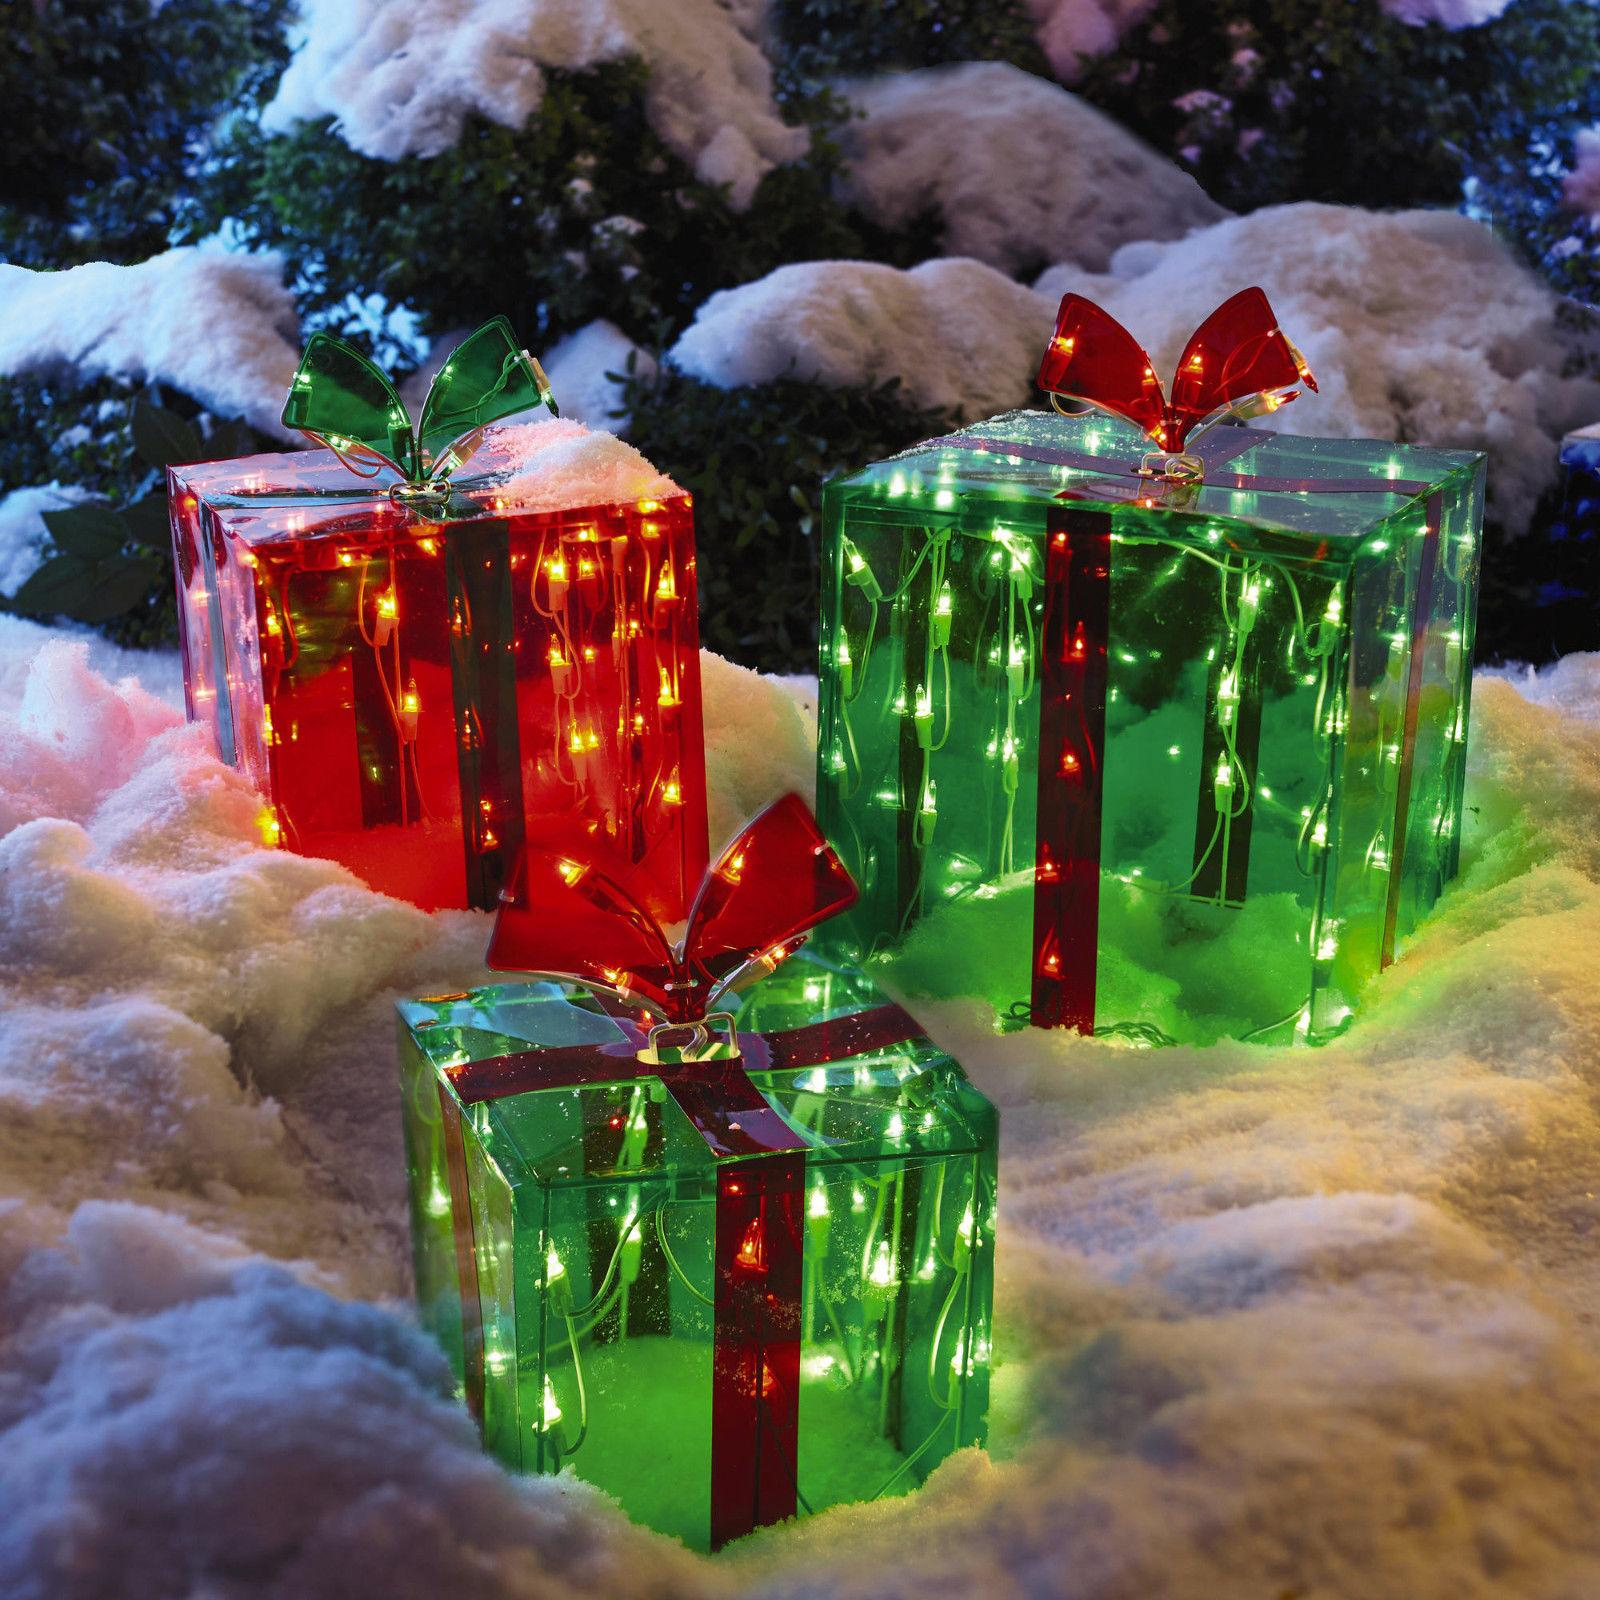 3 lighted gift boxes christmas decoration yard